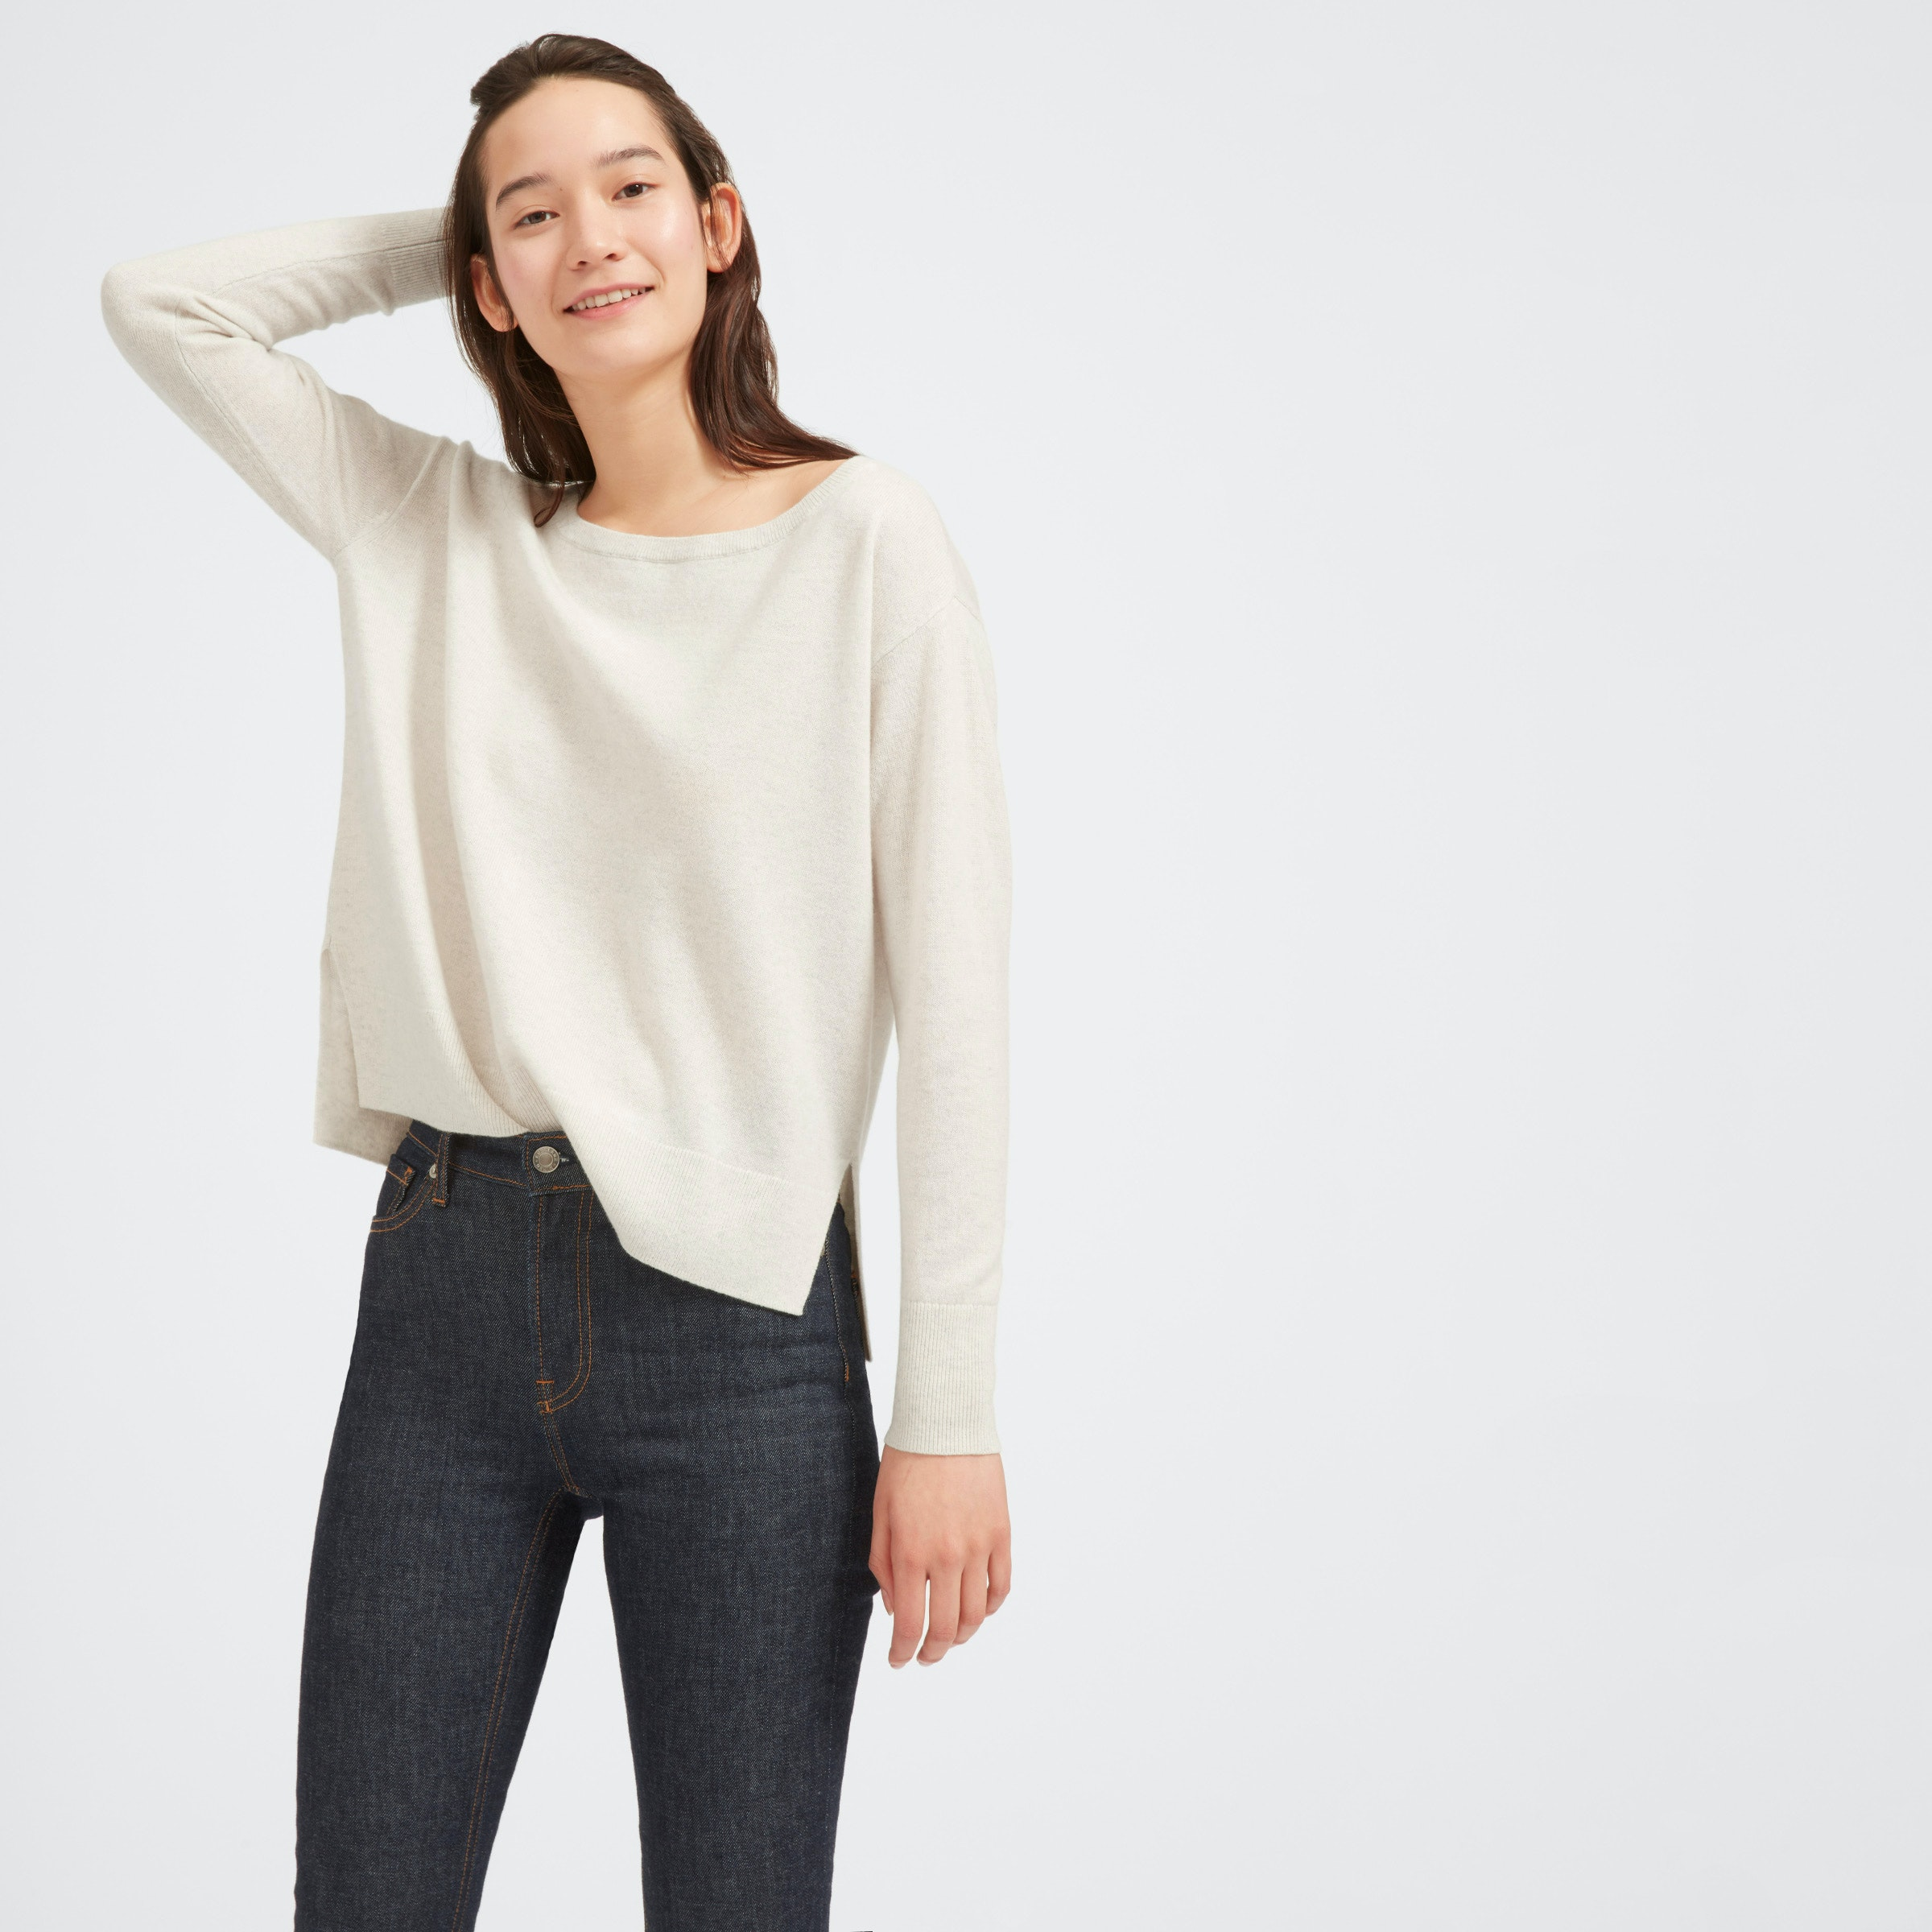 The Slouchy Cashmere Boatneck by Everlane